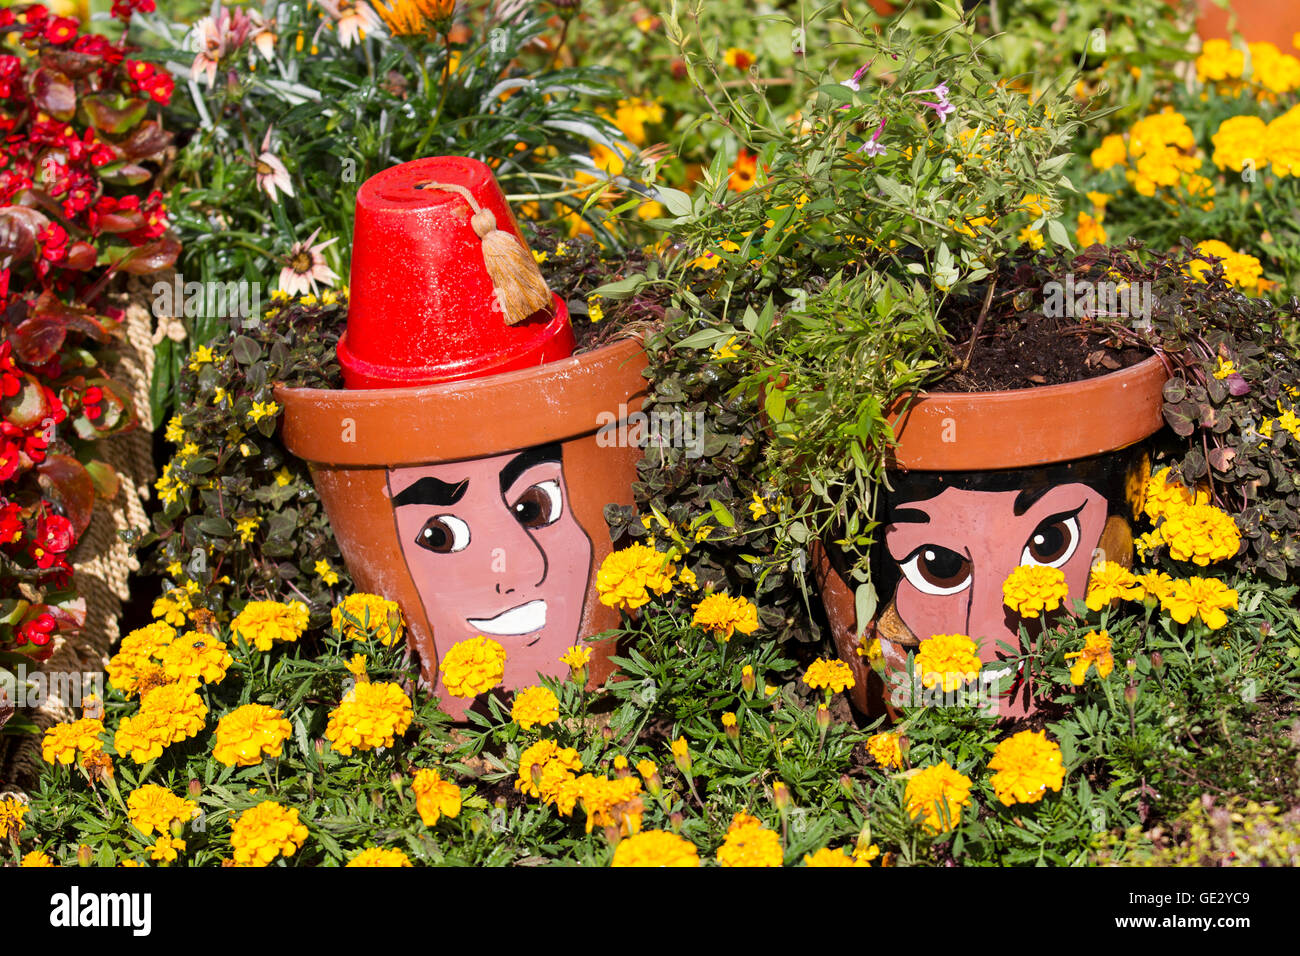 Painted Faces On Plant Pots In A Flowerbed Ot Marigolds. RHS Royal  Horticultural Society 2016 Flower Show At Tatton PARK, Knutsford, UK